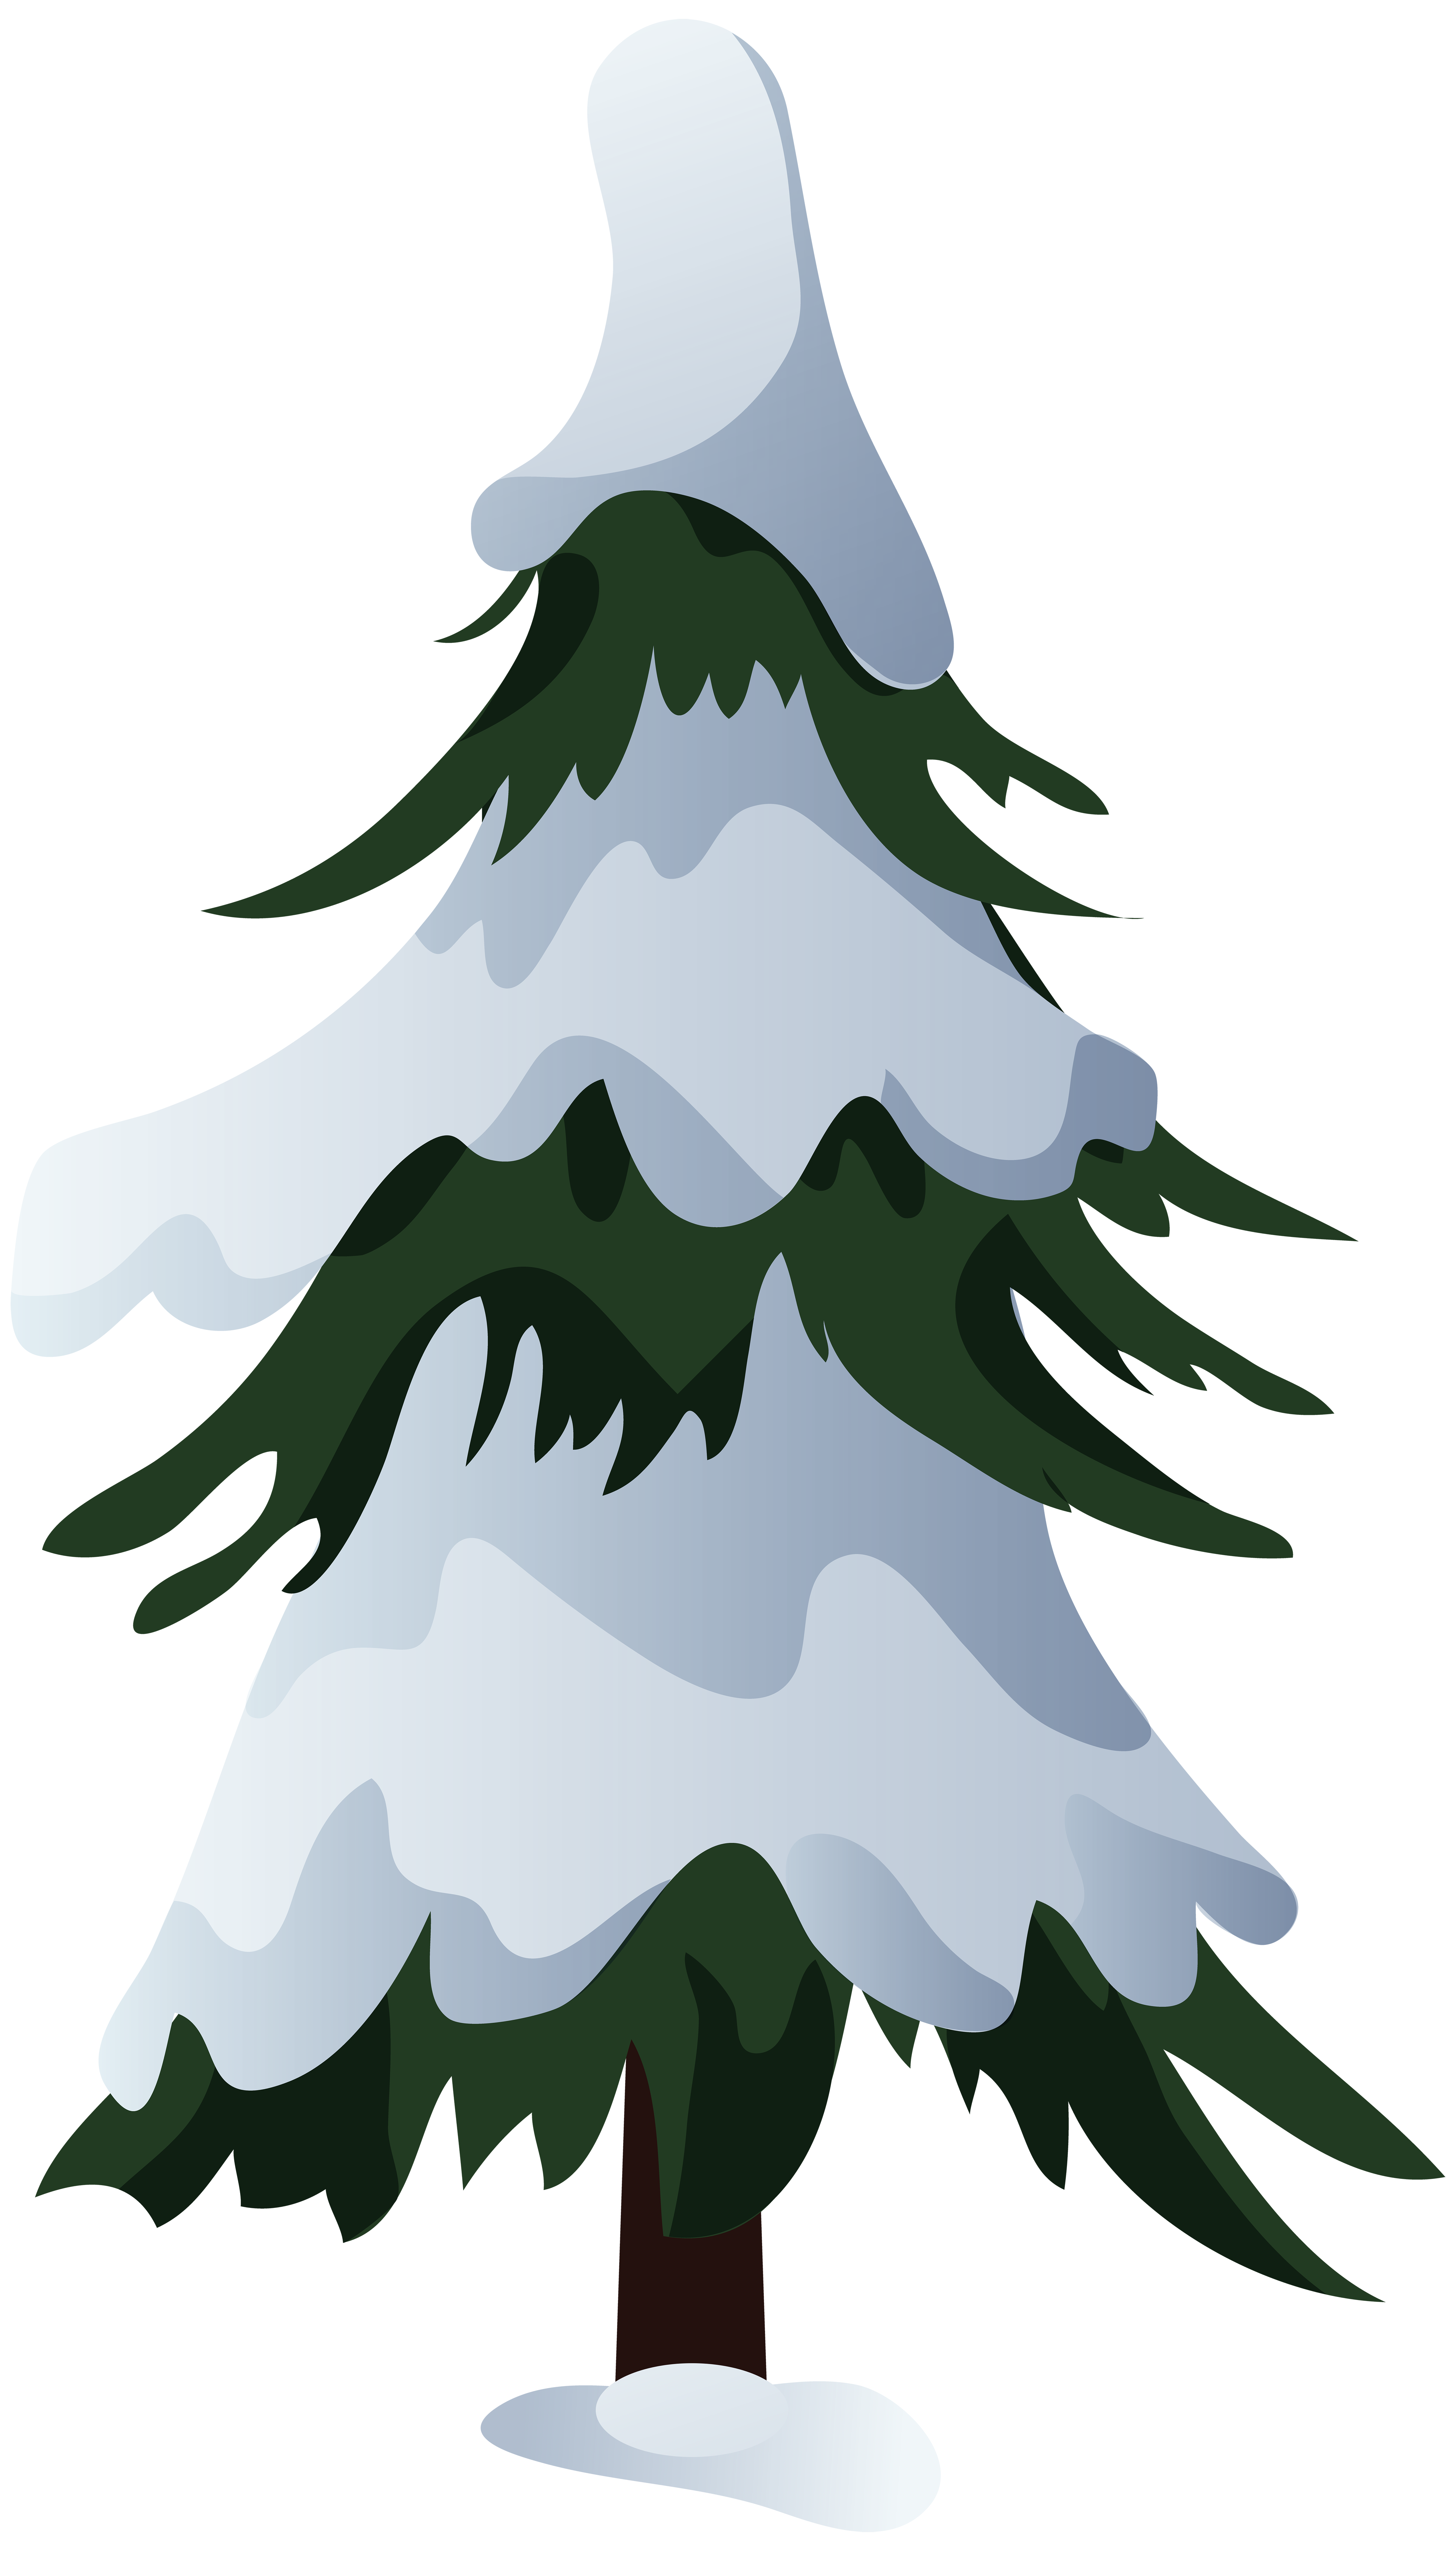 snowy trees png